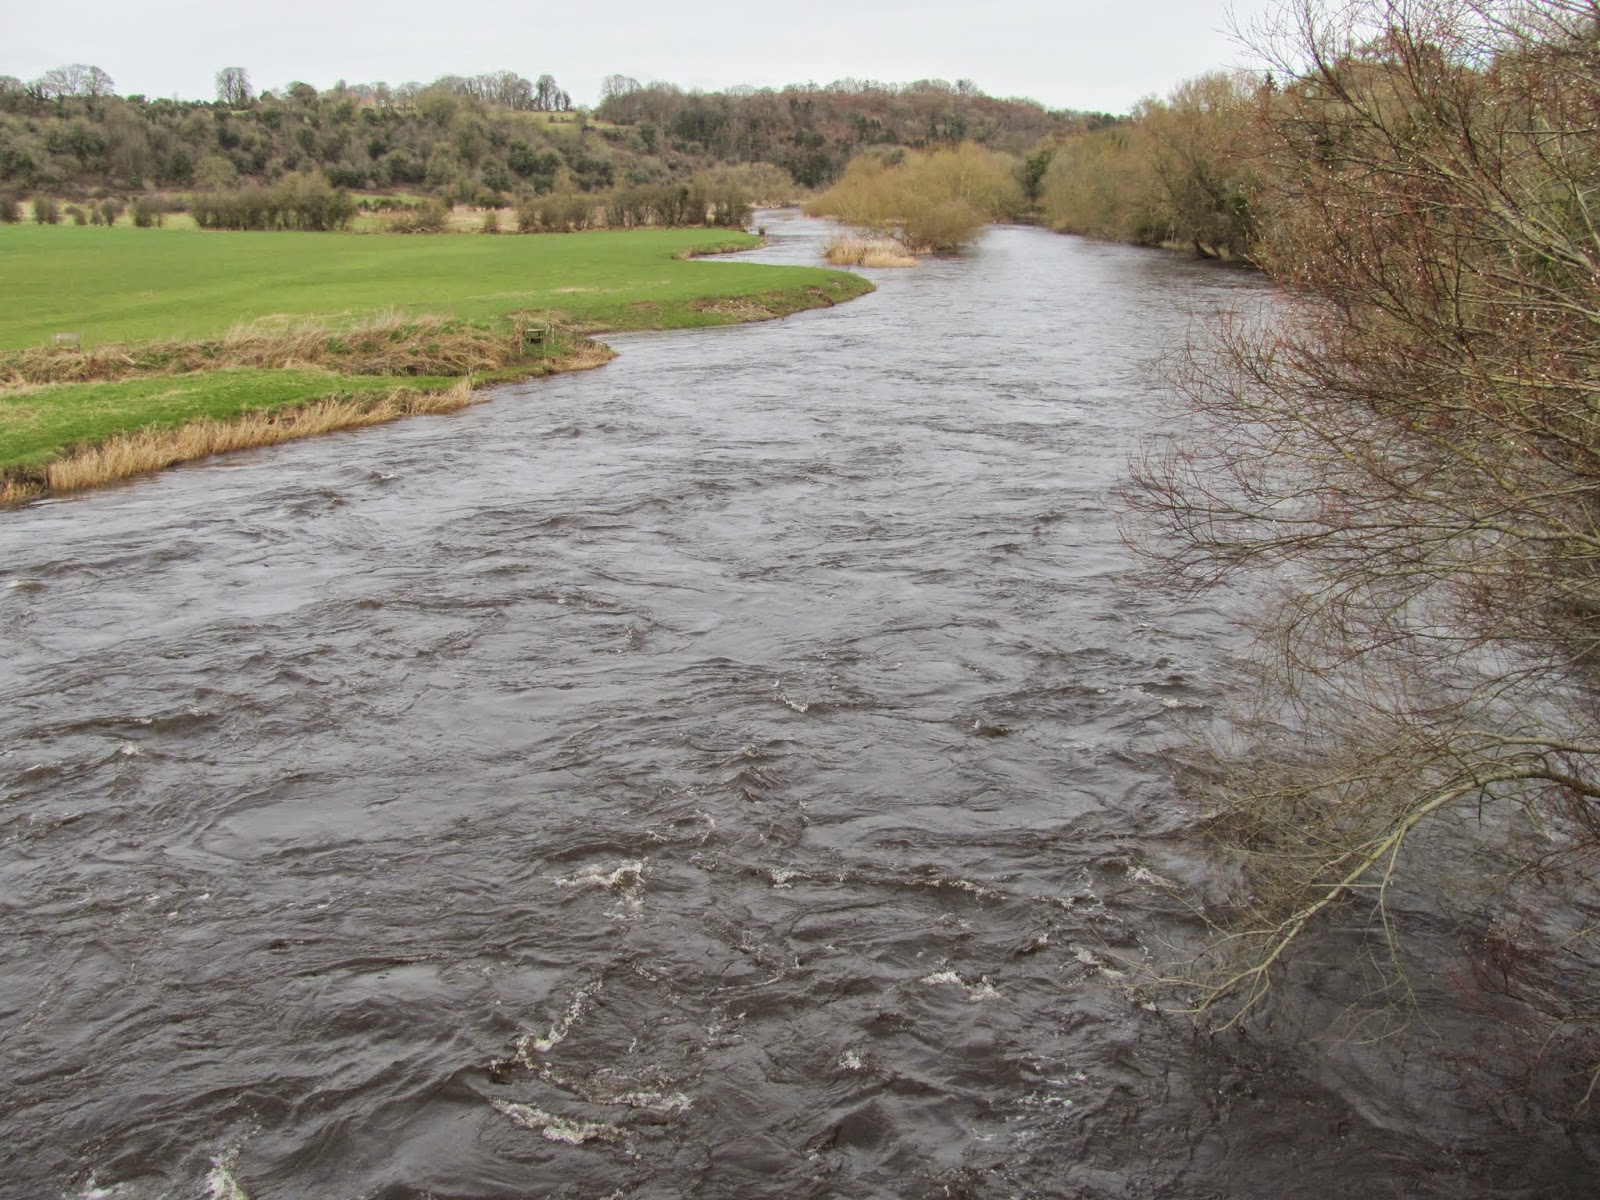 The Beautiful River Boyne Co. Meath, Ireland